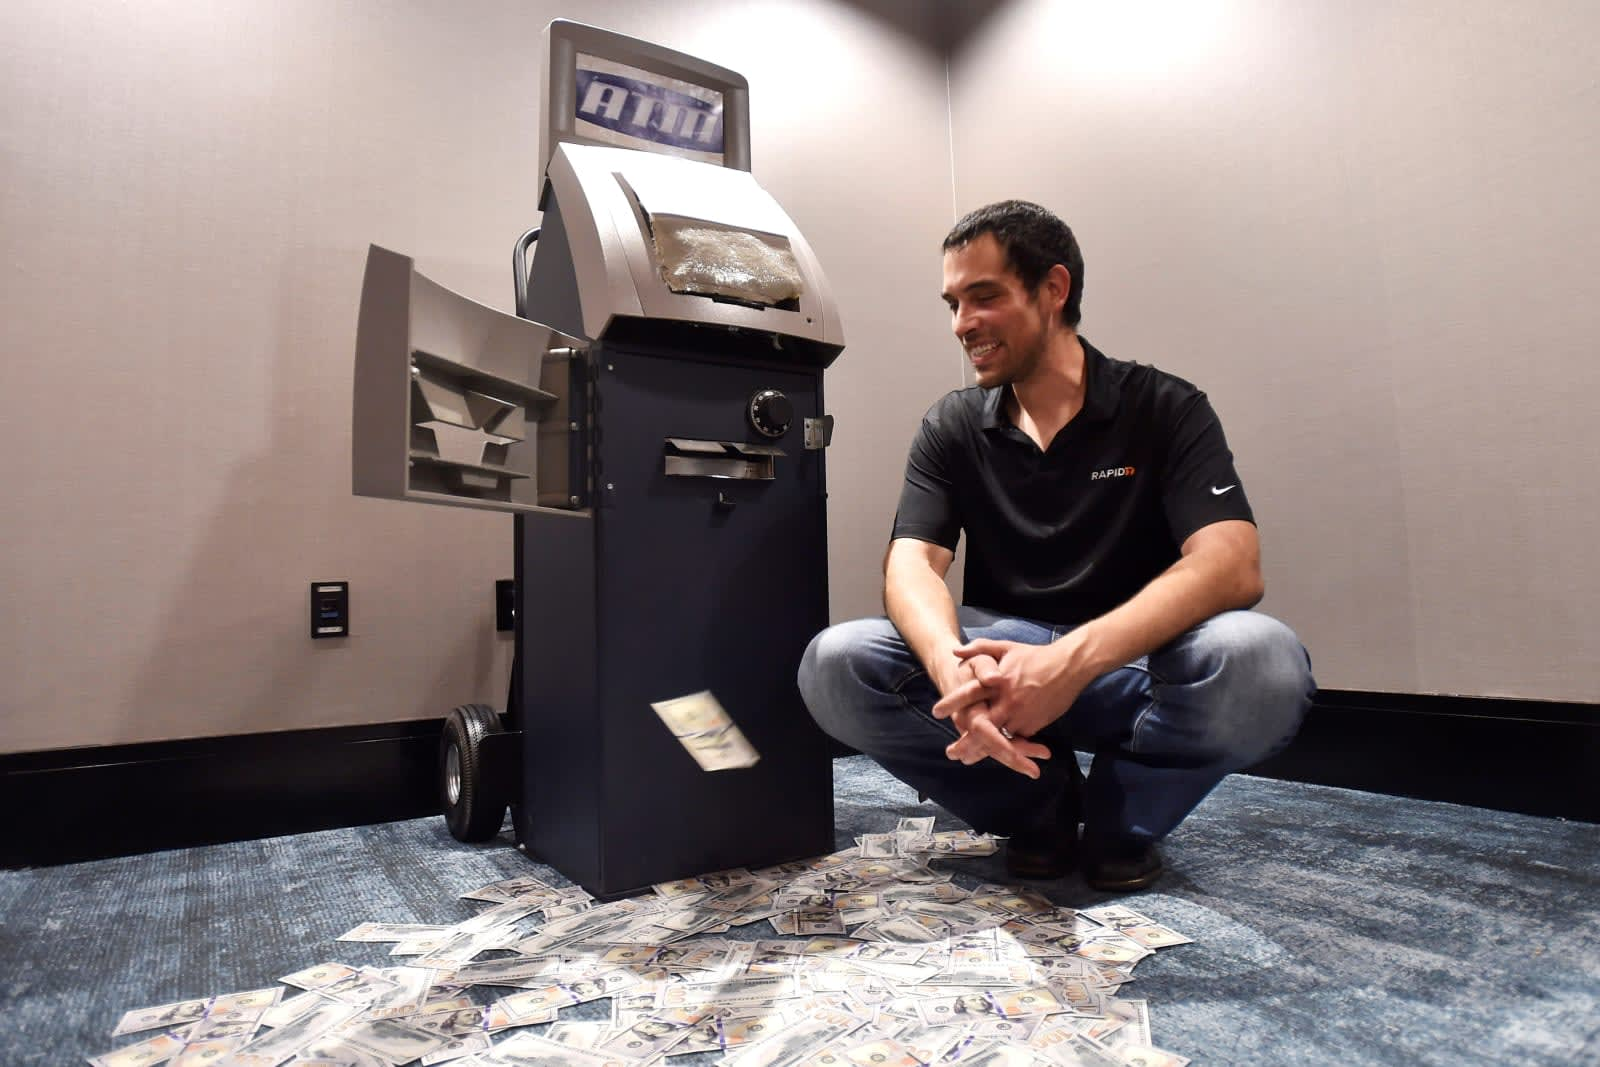 ATM 'jackpotting' hacks reach the US